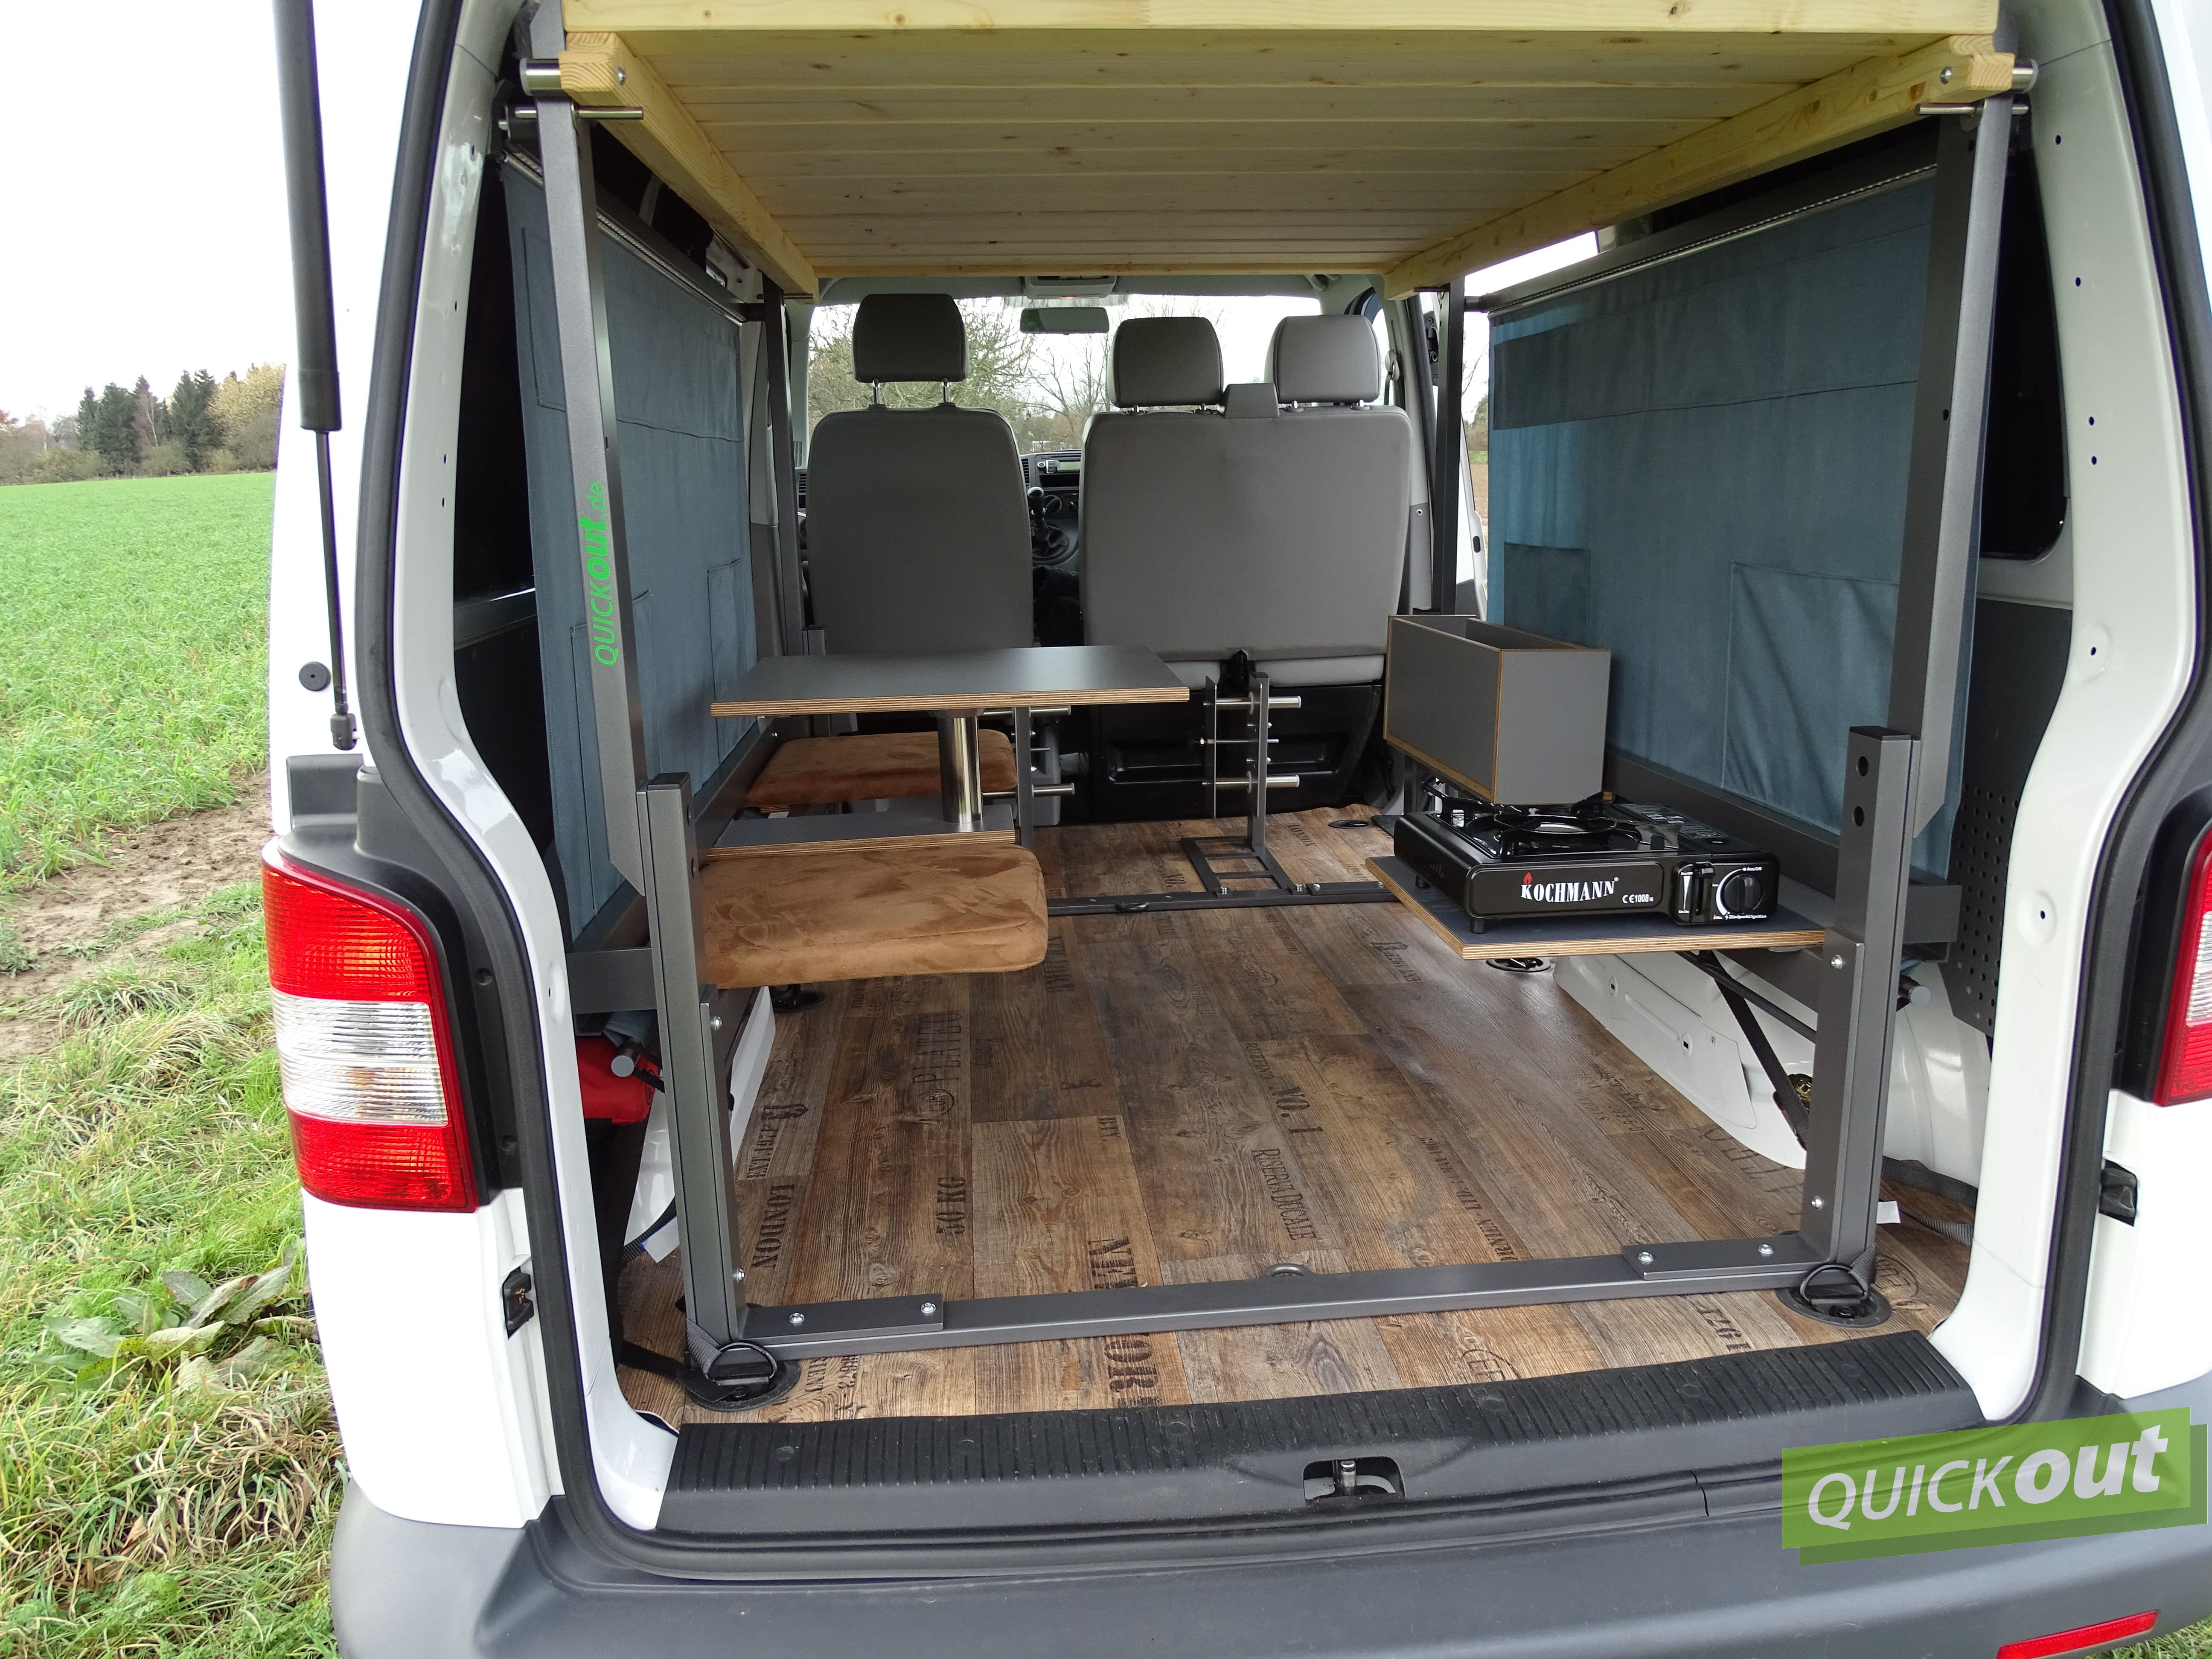 vw t4 quickout wohnmobilausbau. Black Bedroom Furniture Sets. Home Design Ideas